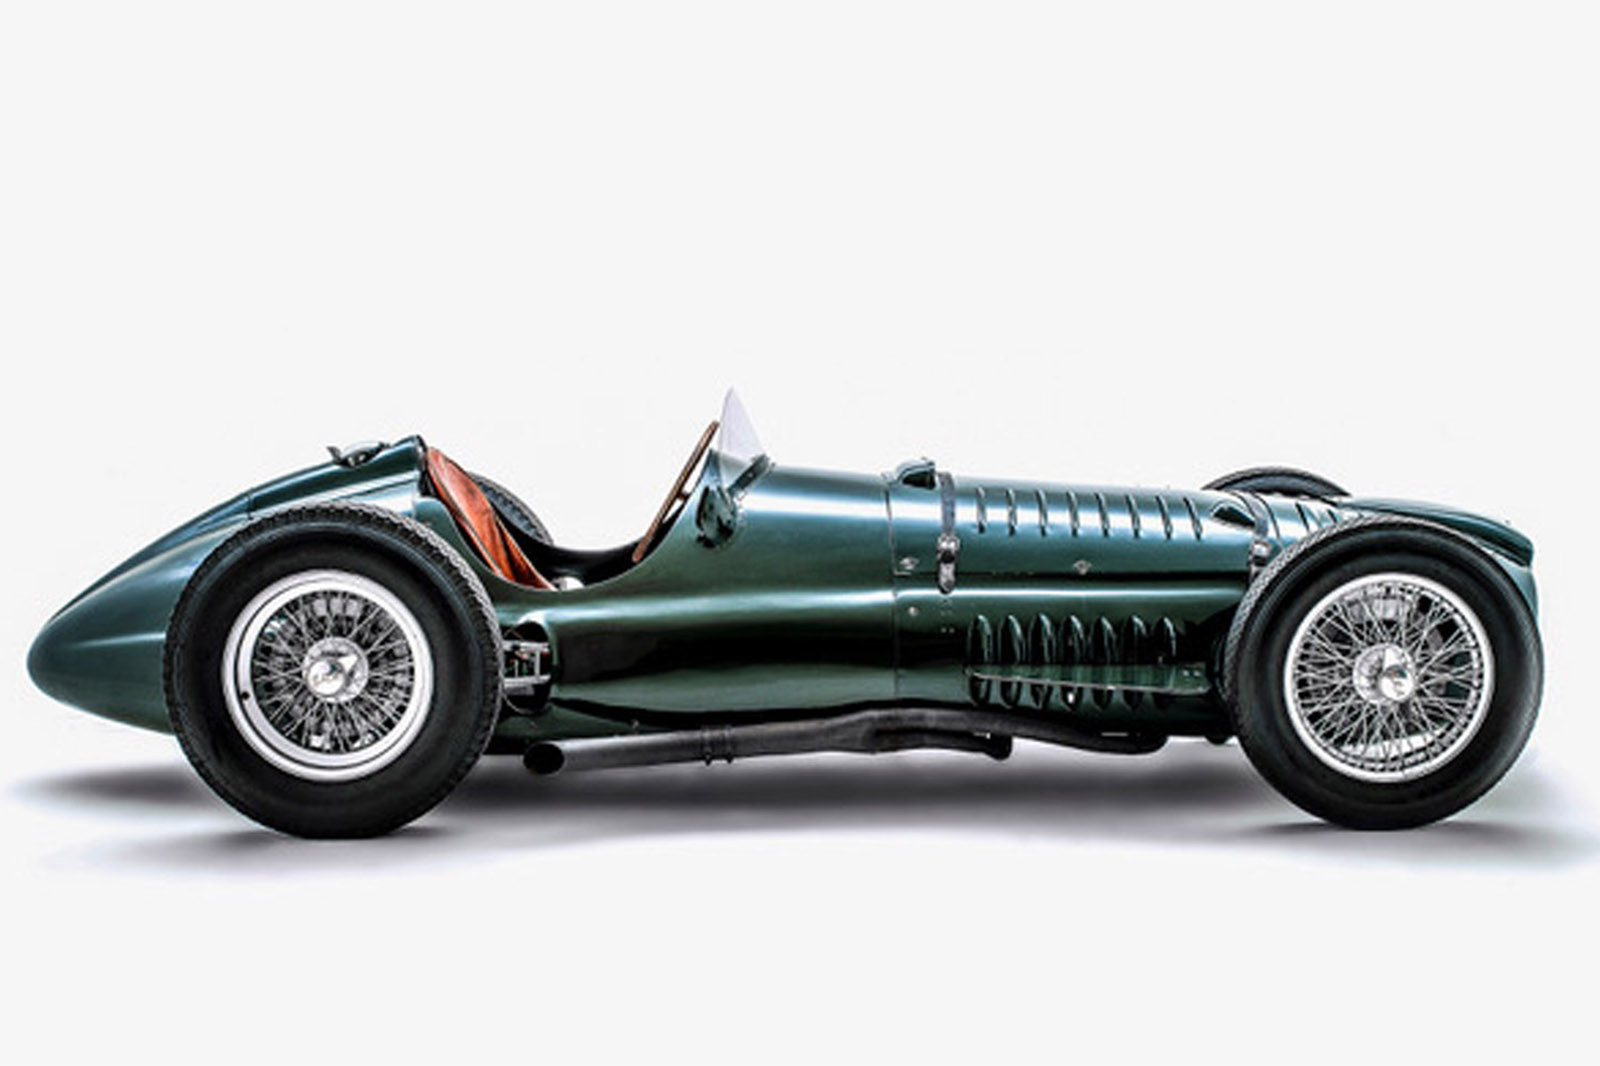 BRM Type 15: 591bhp V16 engine fired up in new video | Autocar